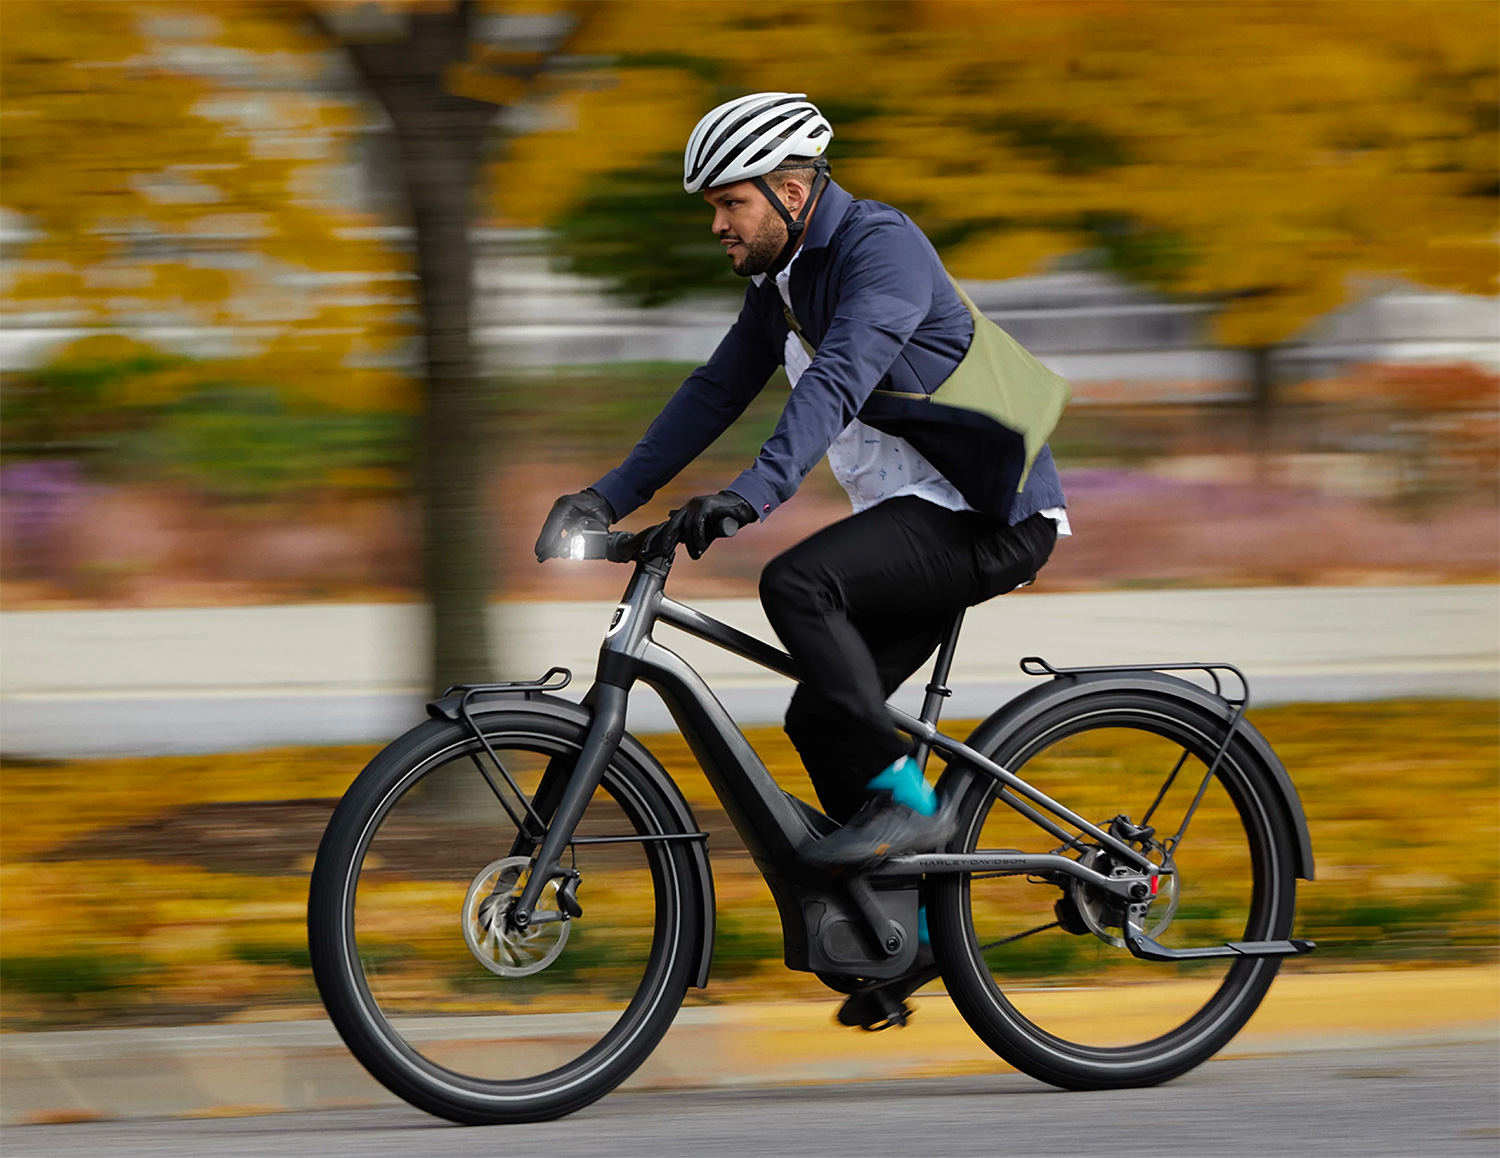 Harley-Davidson Sparks Innovation with Serial 1 E-Bikes at werd.com